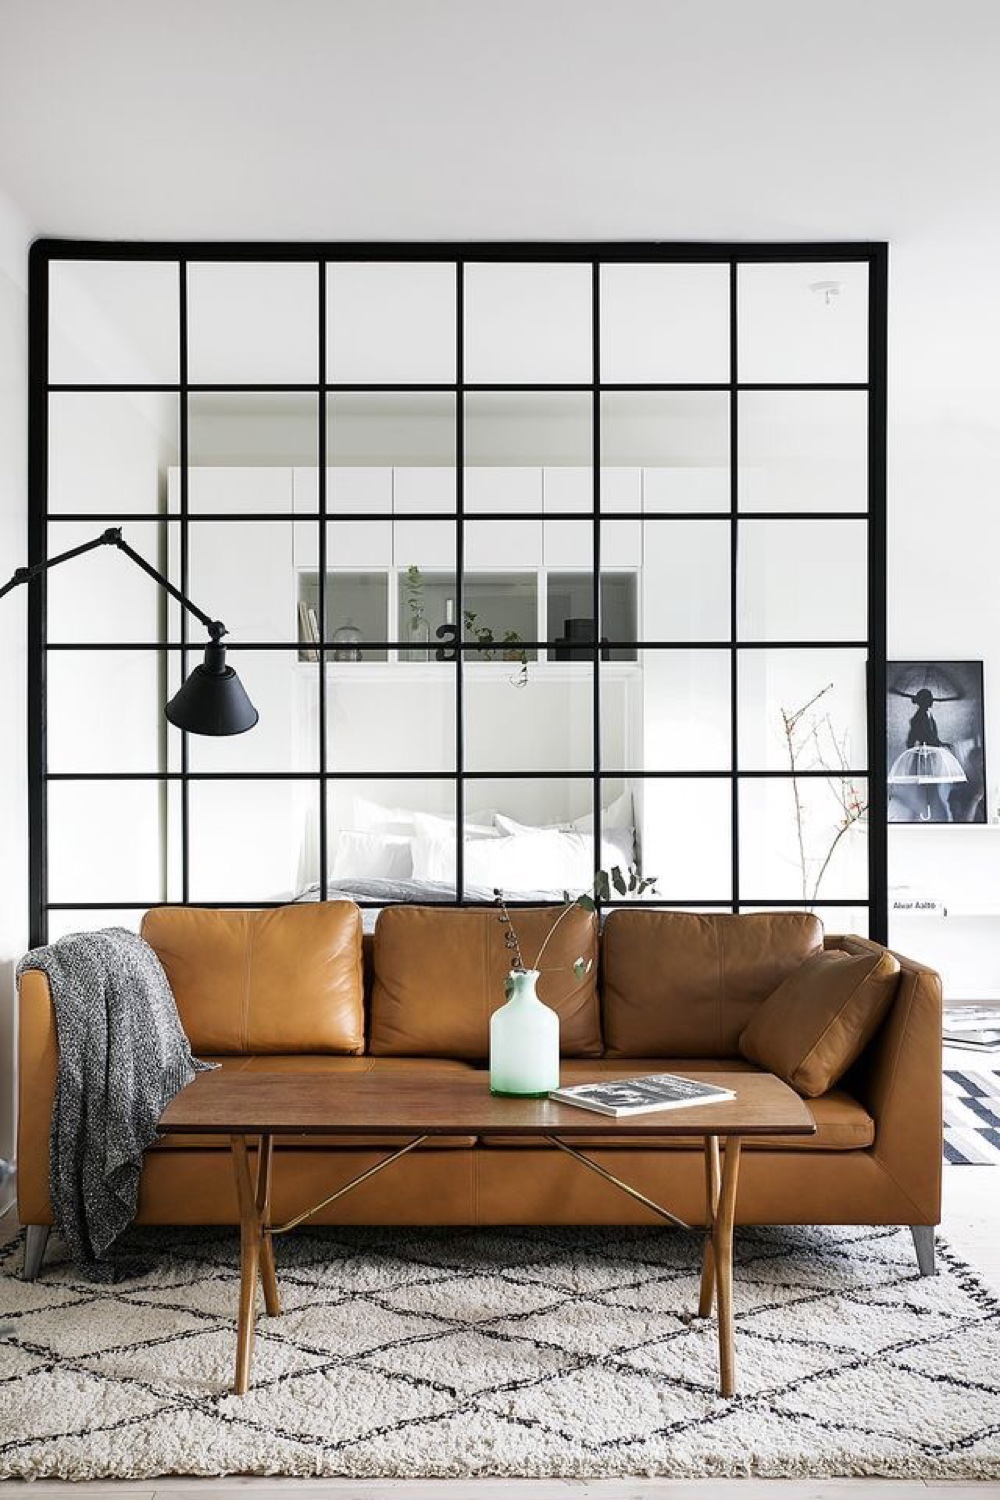 Interior window frames - Crittall Steel Window Frames Crittal Cripple Steel Window Design London House